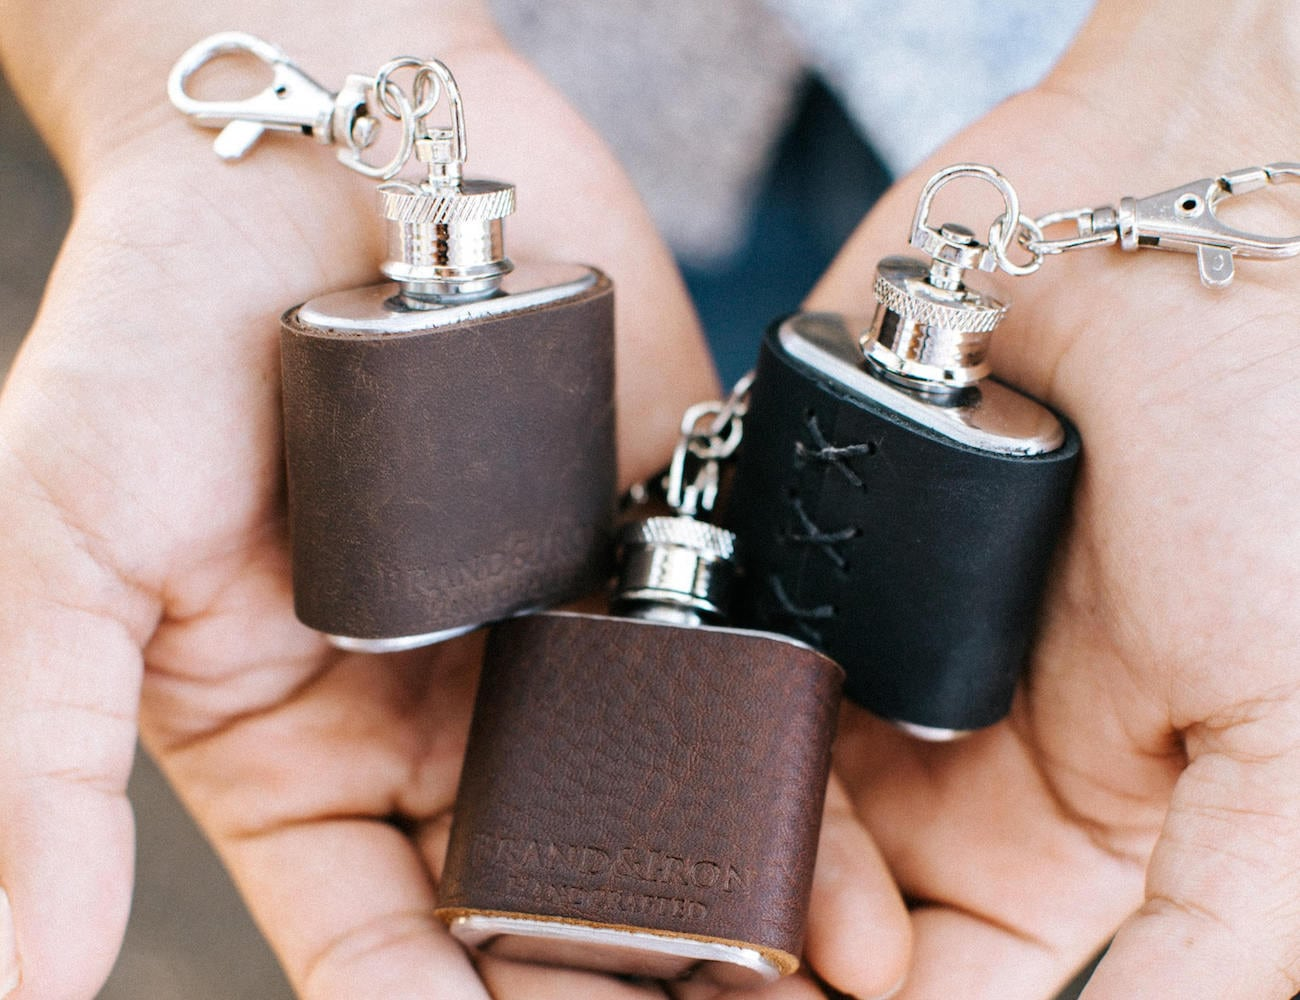 BrandIron Leather Keychain Flask